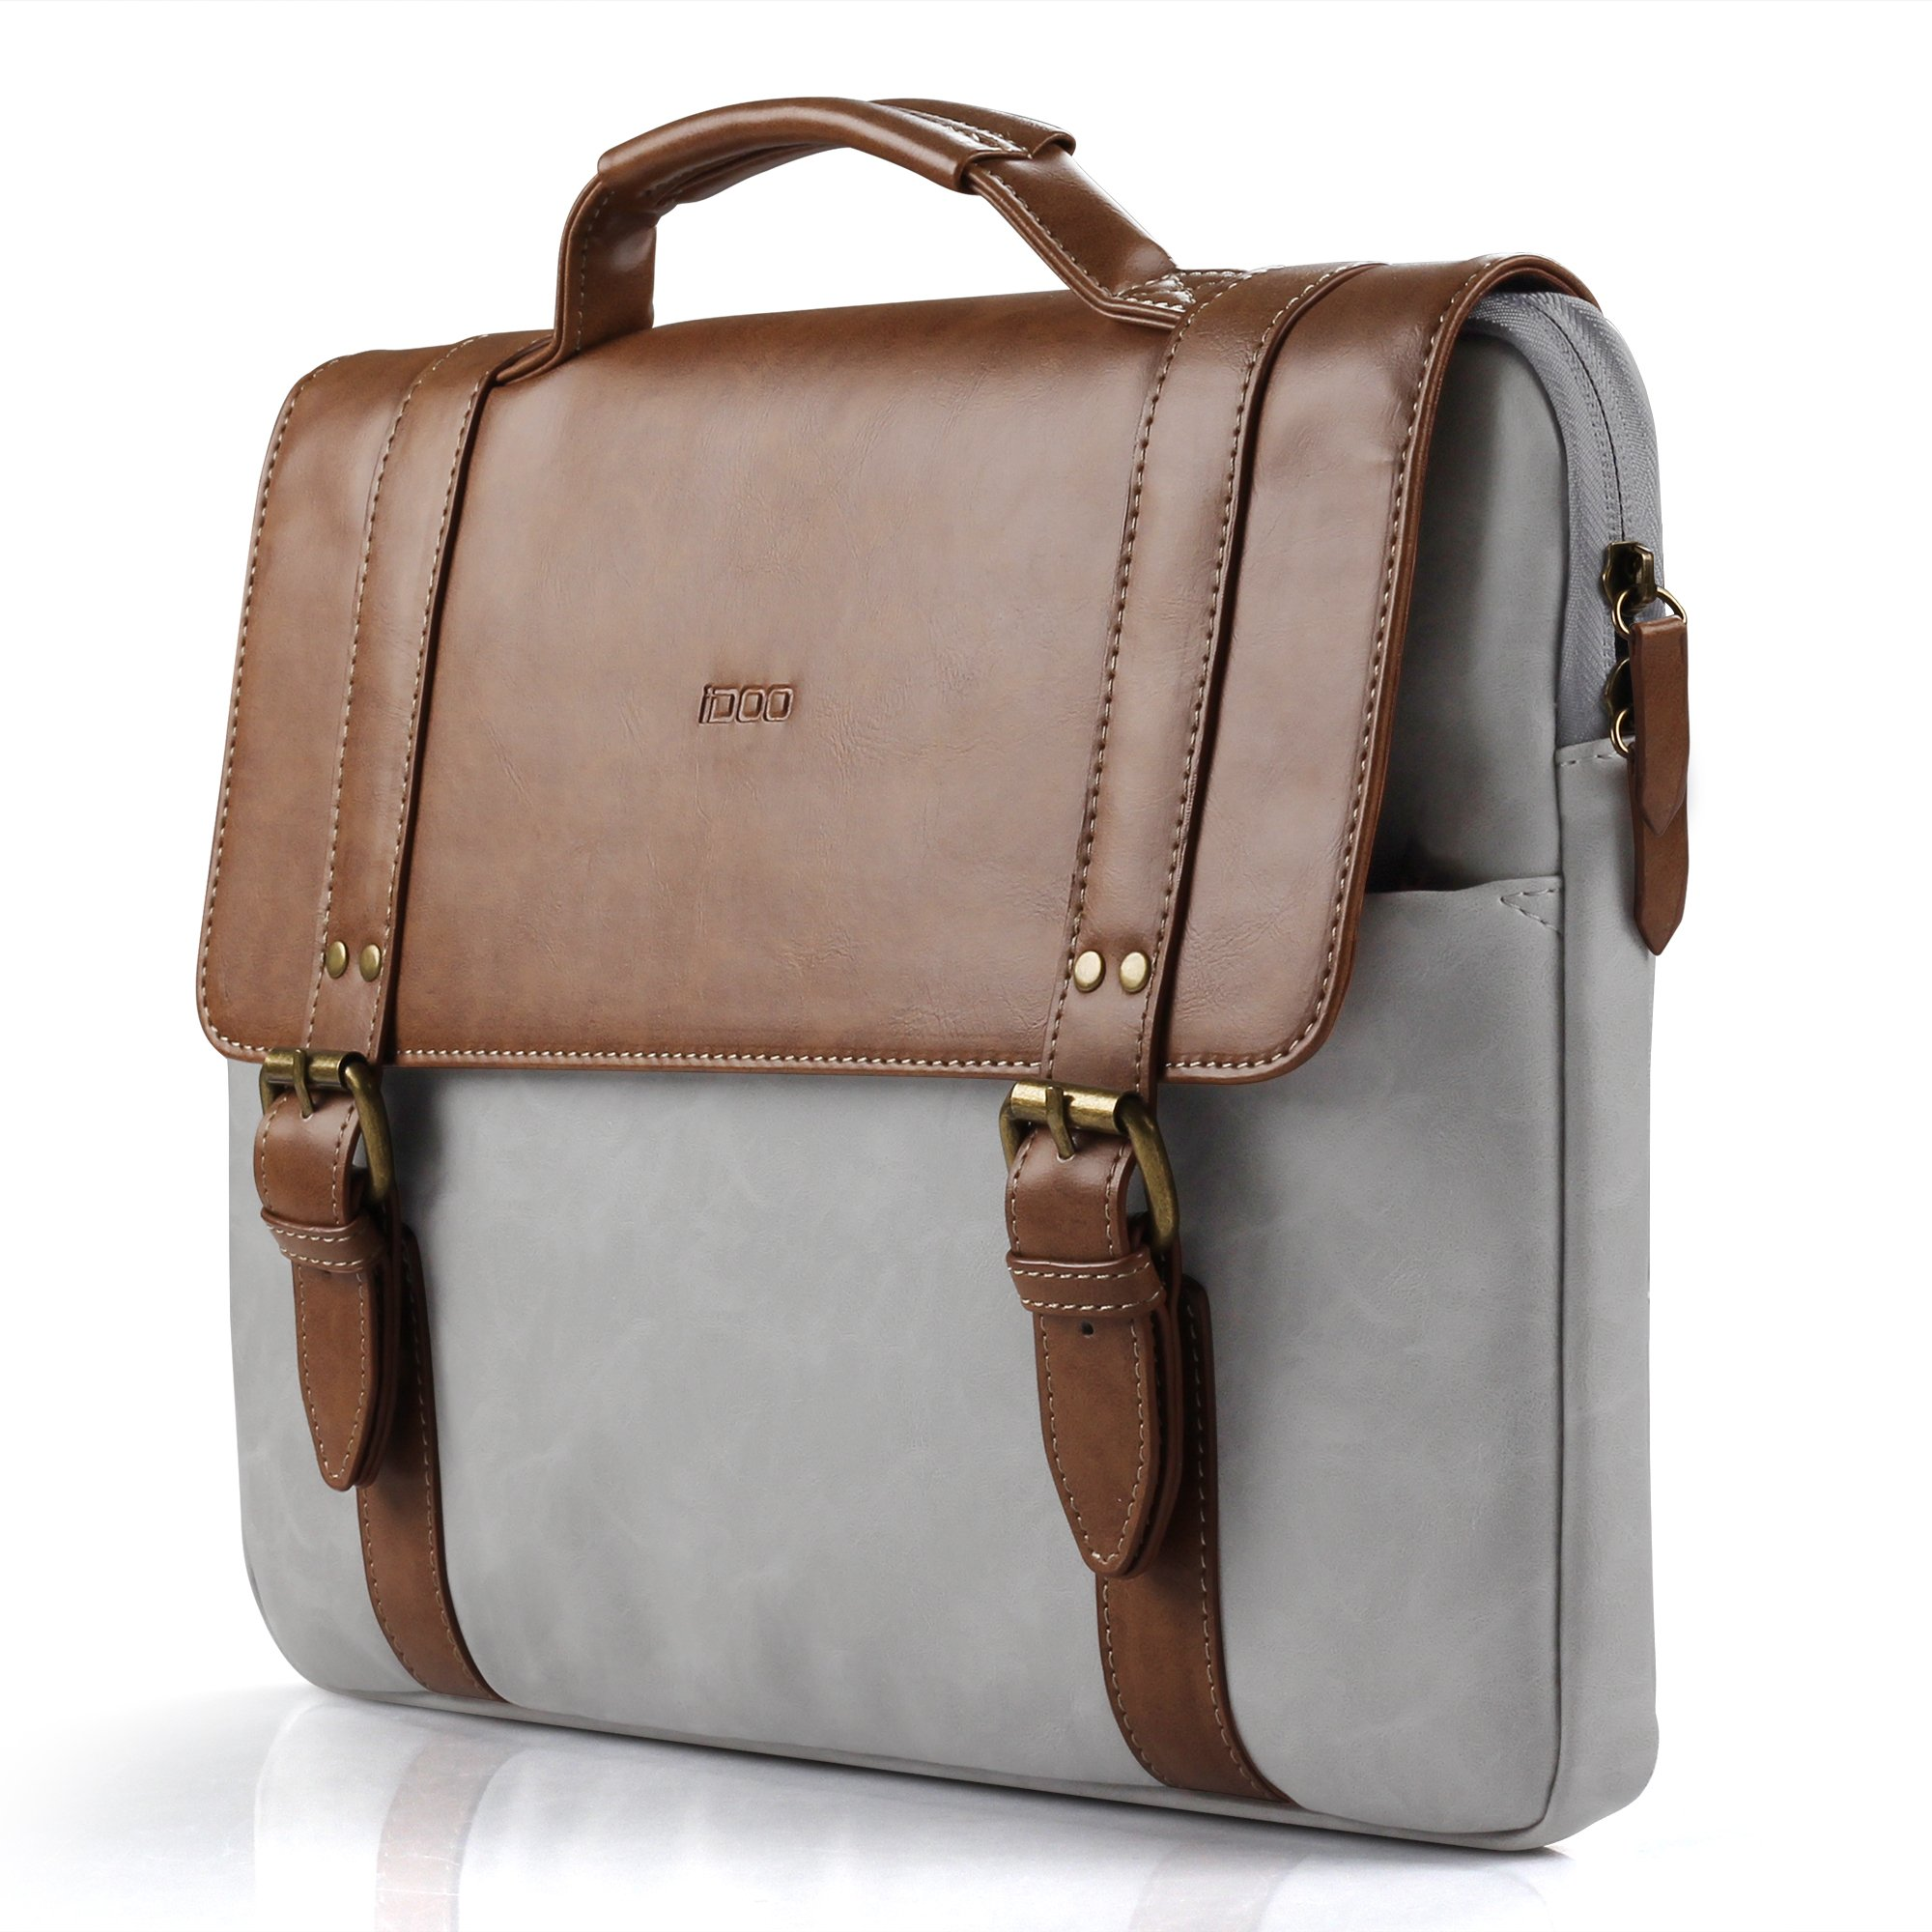 iDOO Faux Leather Laptop Bag Briefcase with Elegant Business Casual Style for 13-13.3 inch MacBook, Brown